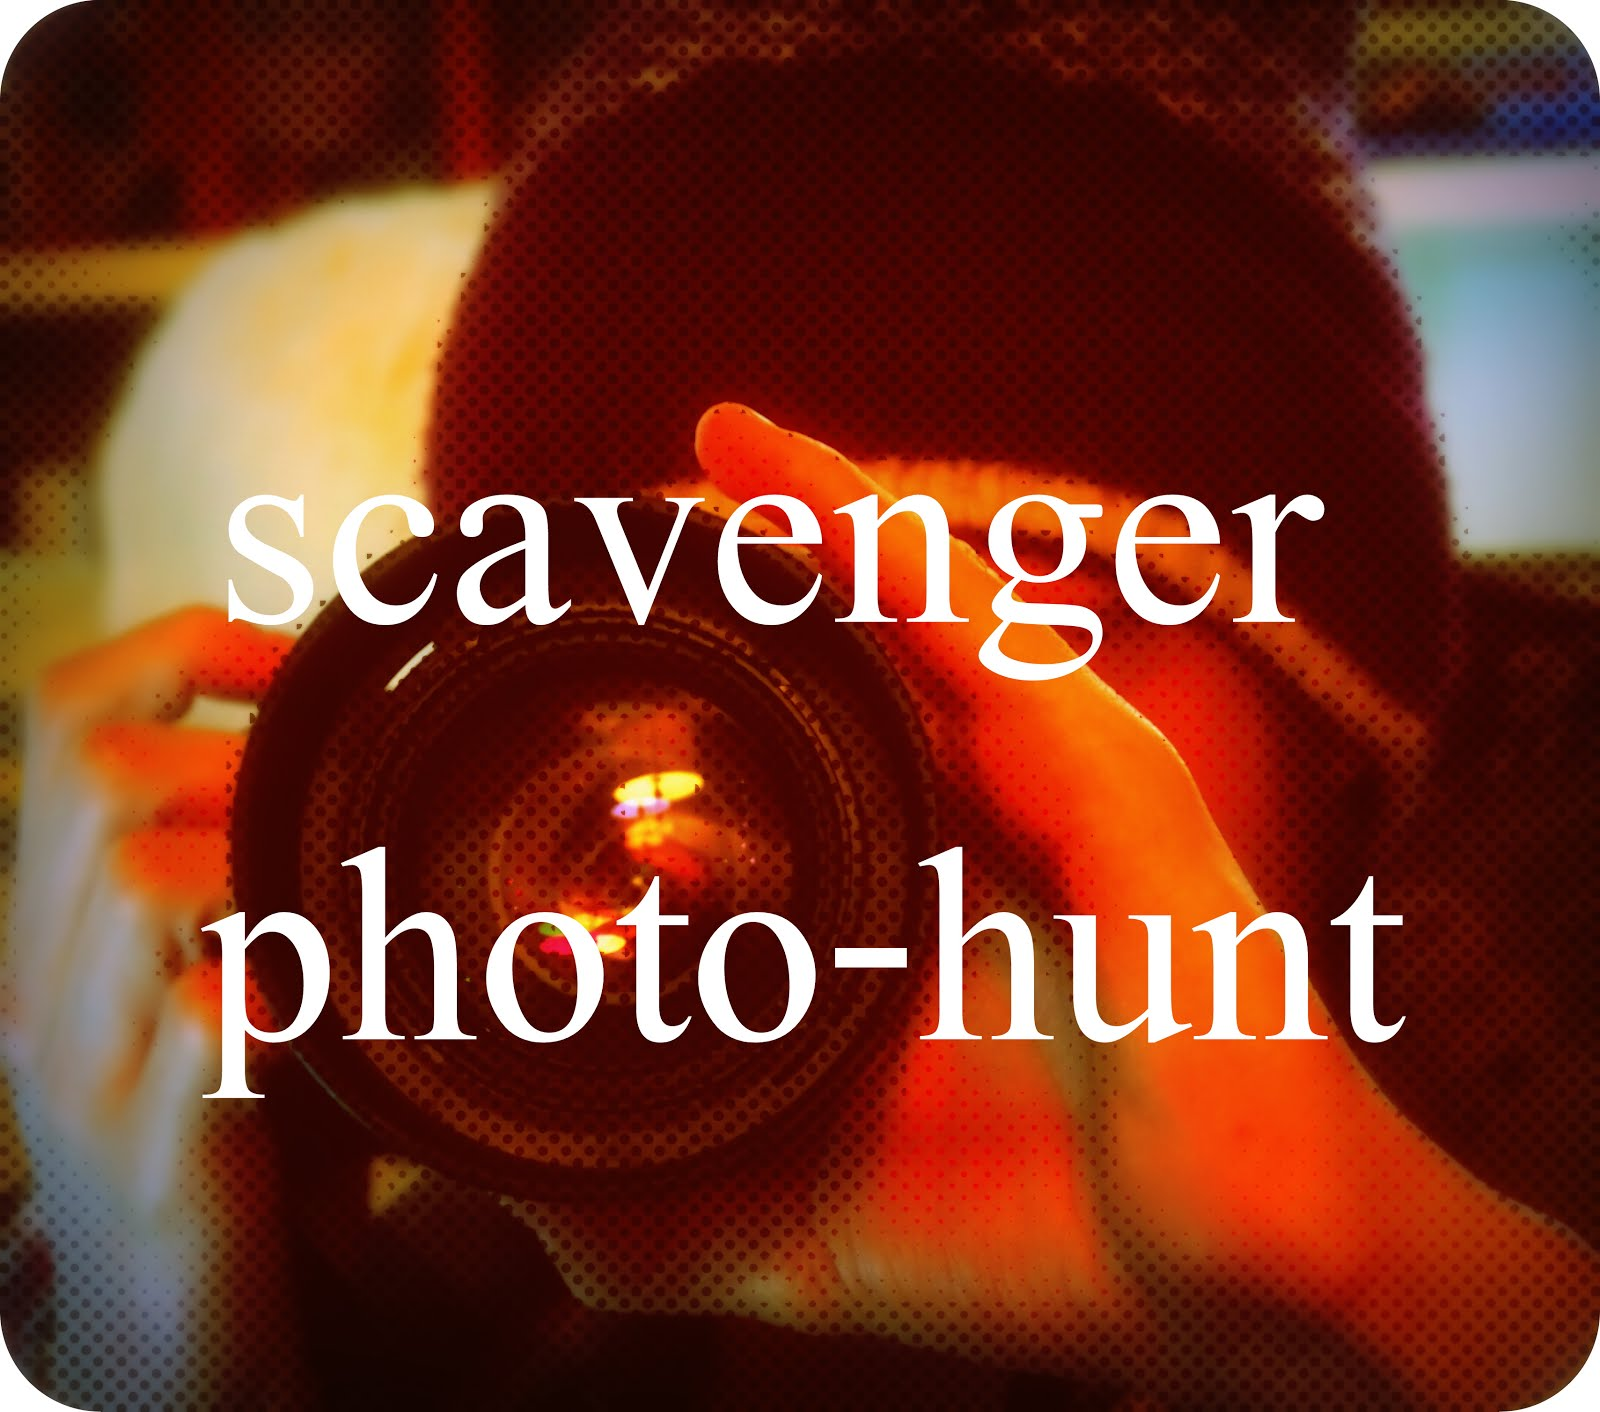 Scavenger photo-hunt BIG REVEAL for JUNE is...